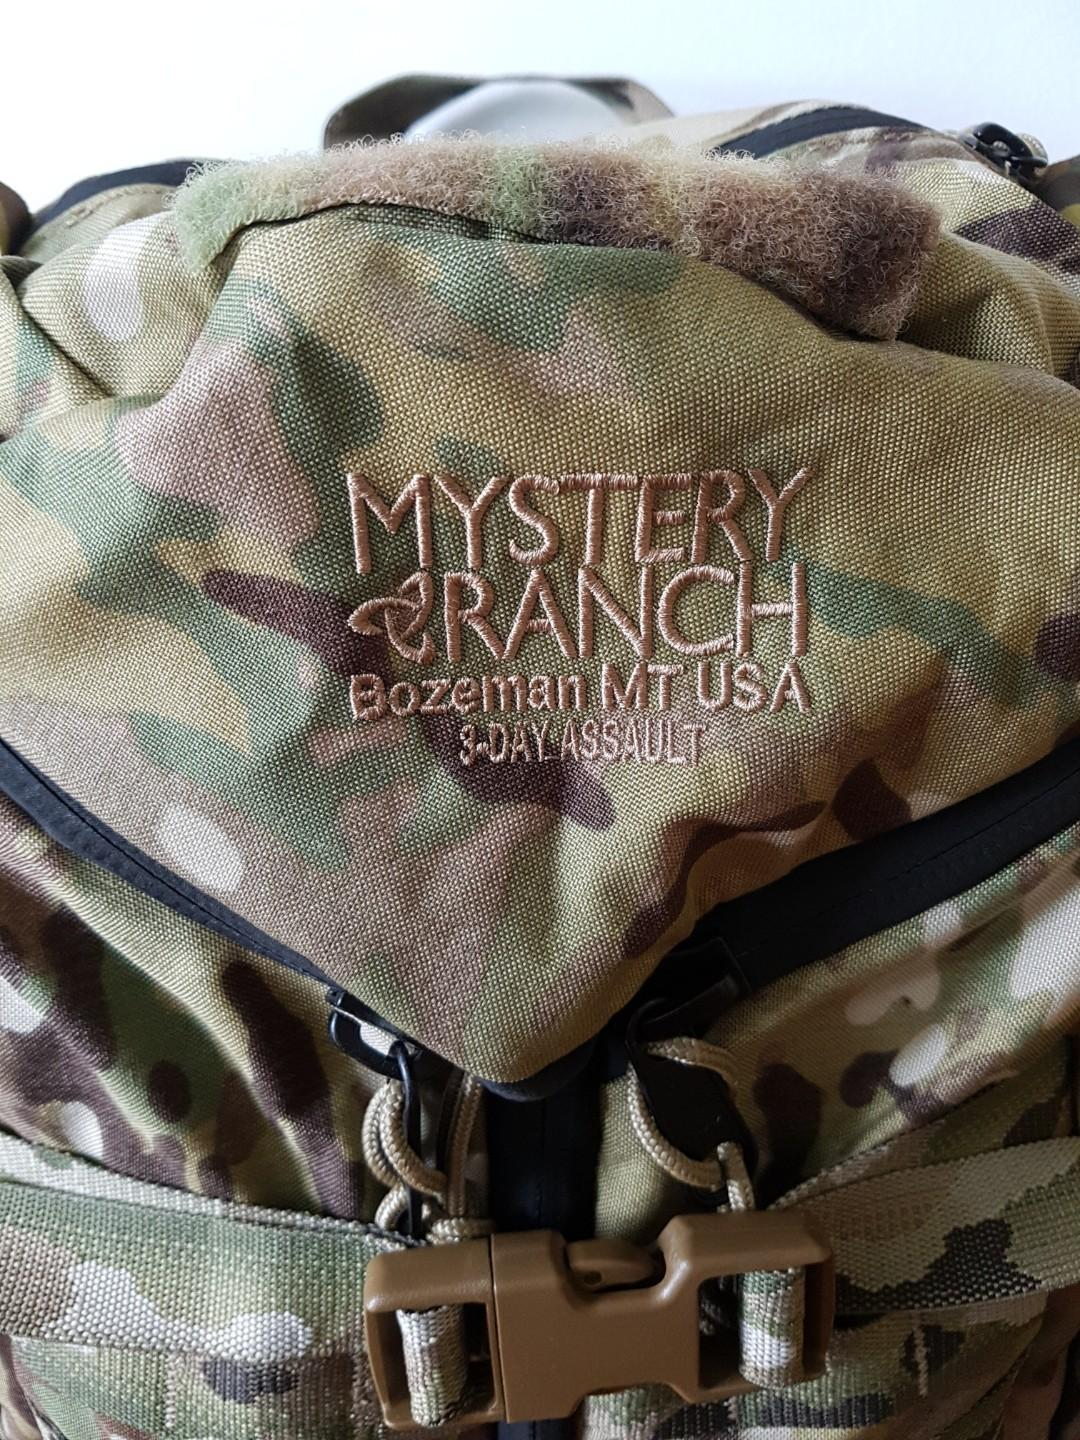 Mystery Ranch 3DAP multicam BVS (USA made)